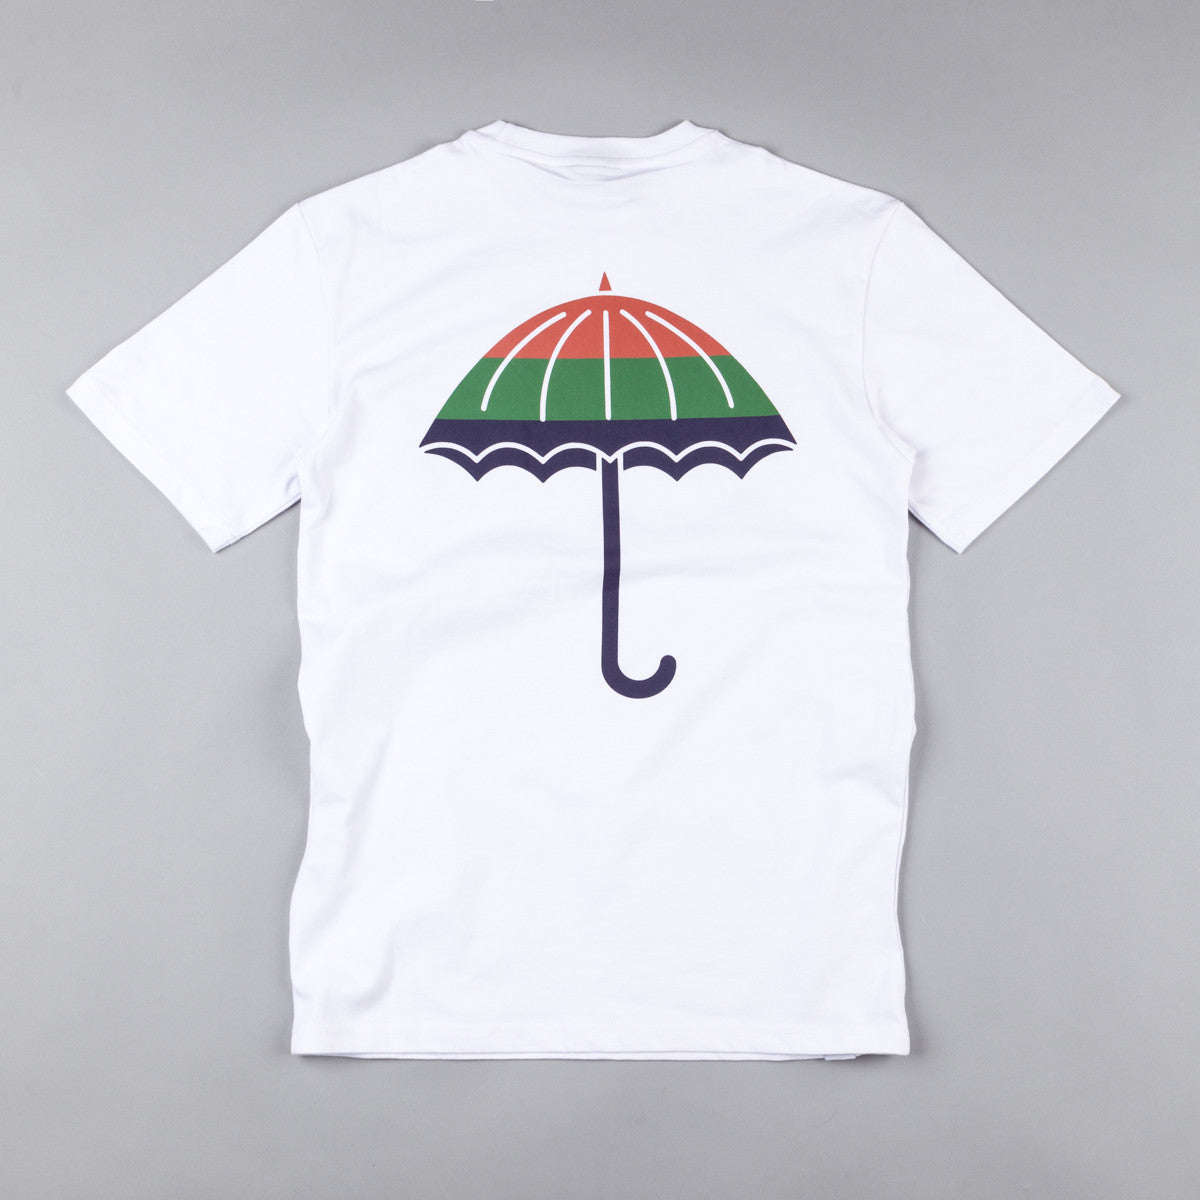 Helas Umbrella Bando T-Shirt - White / Red / Green / Navy